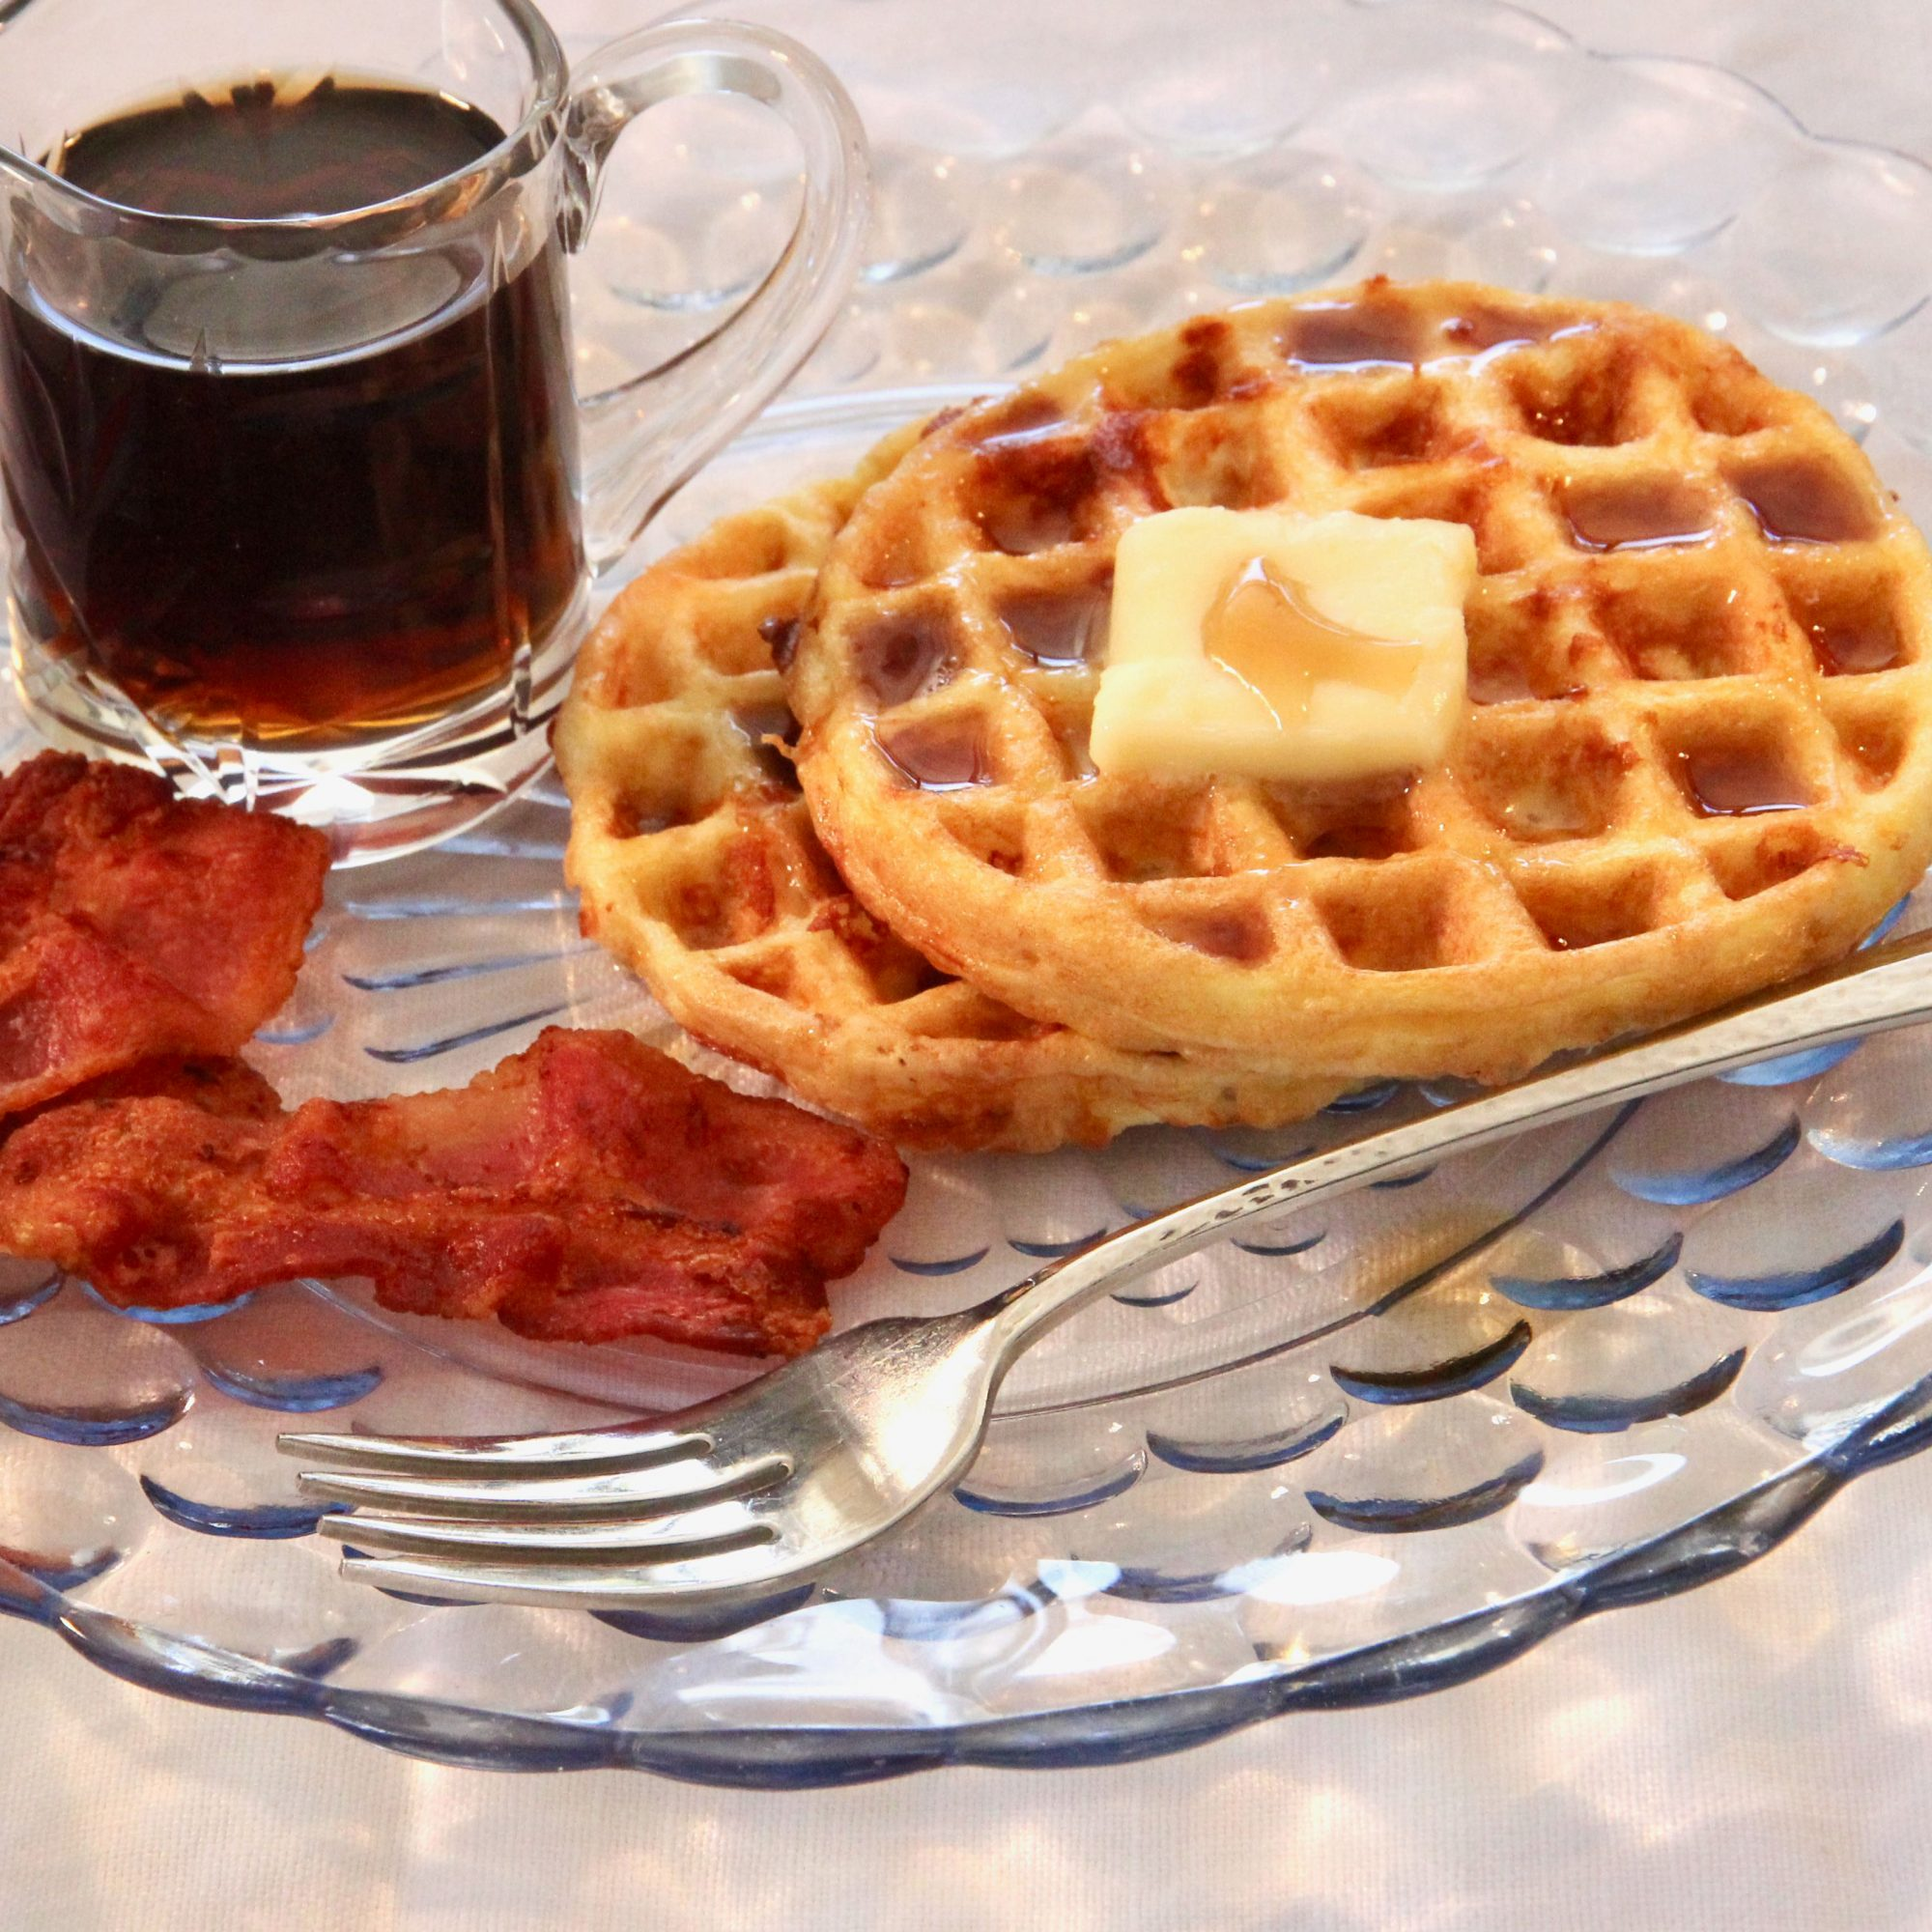 Chaffles on a glass plate with bacon